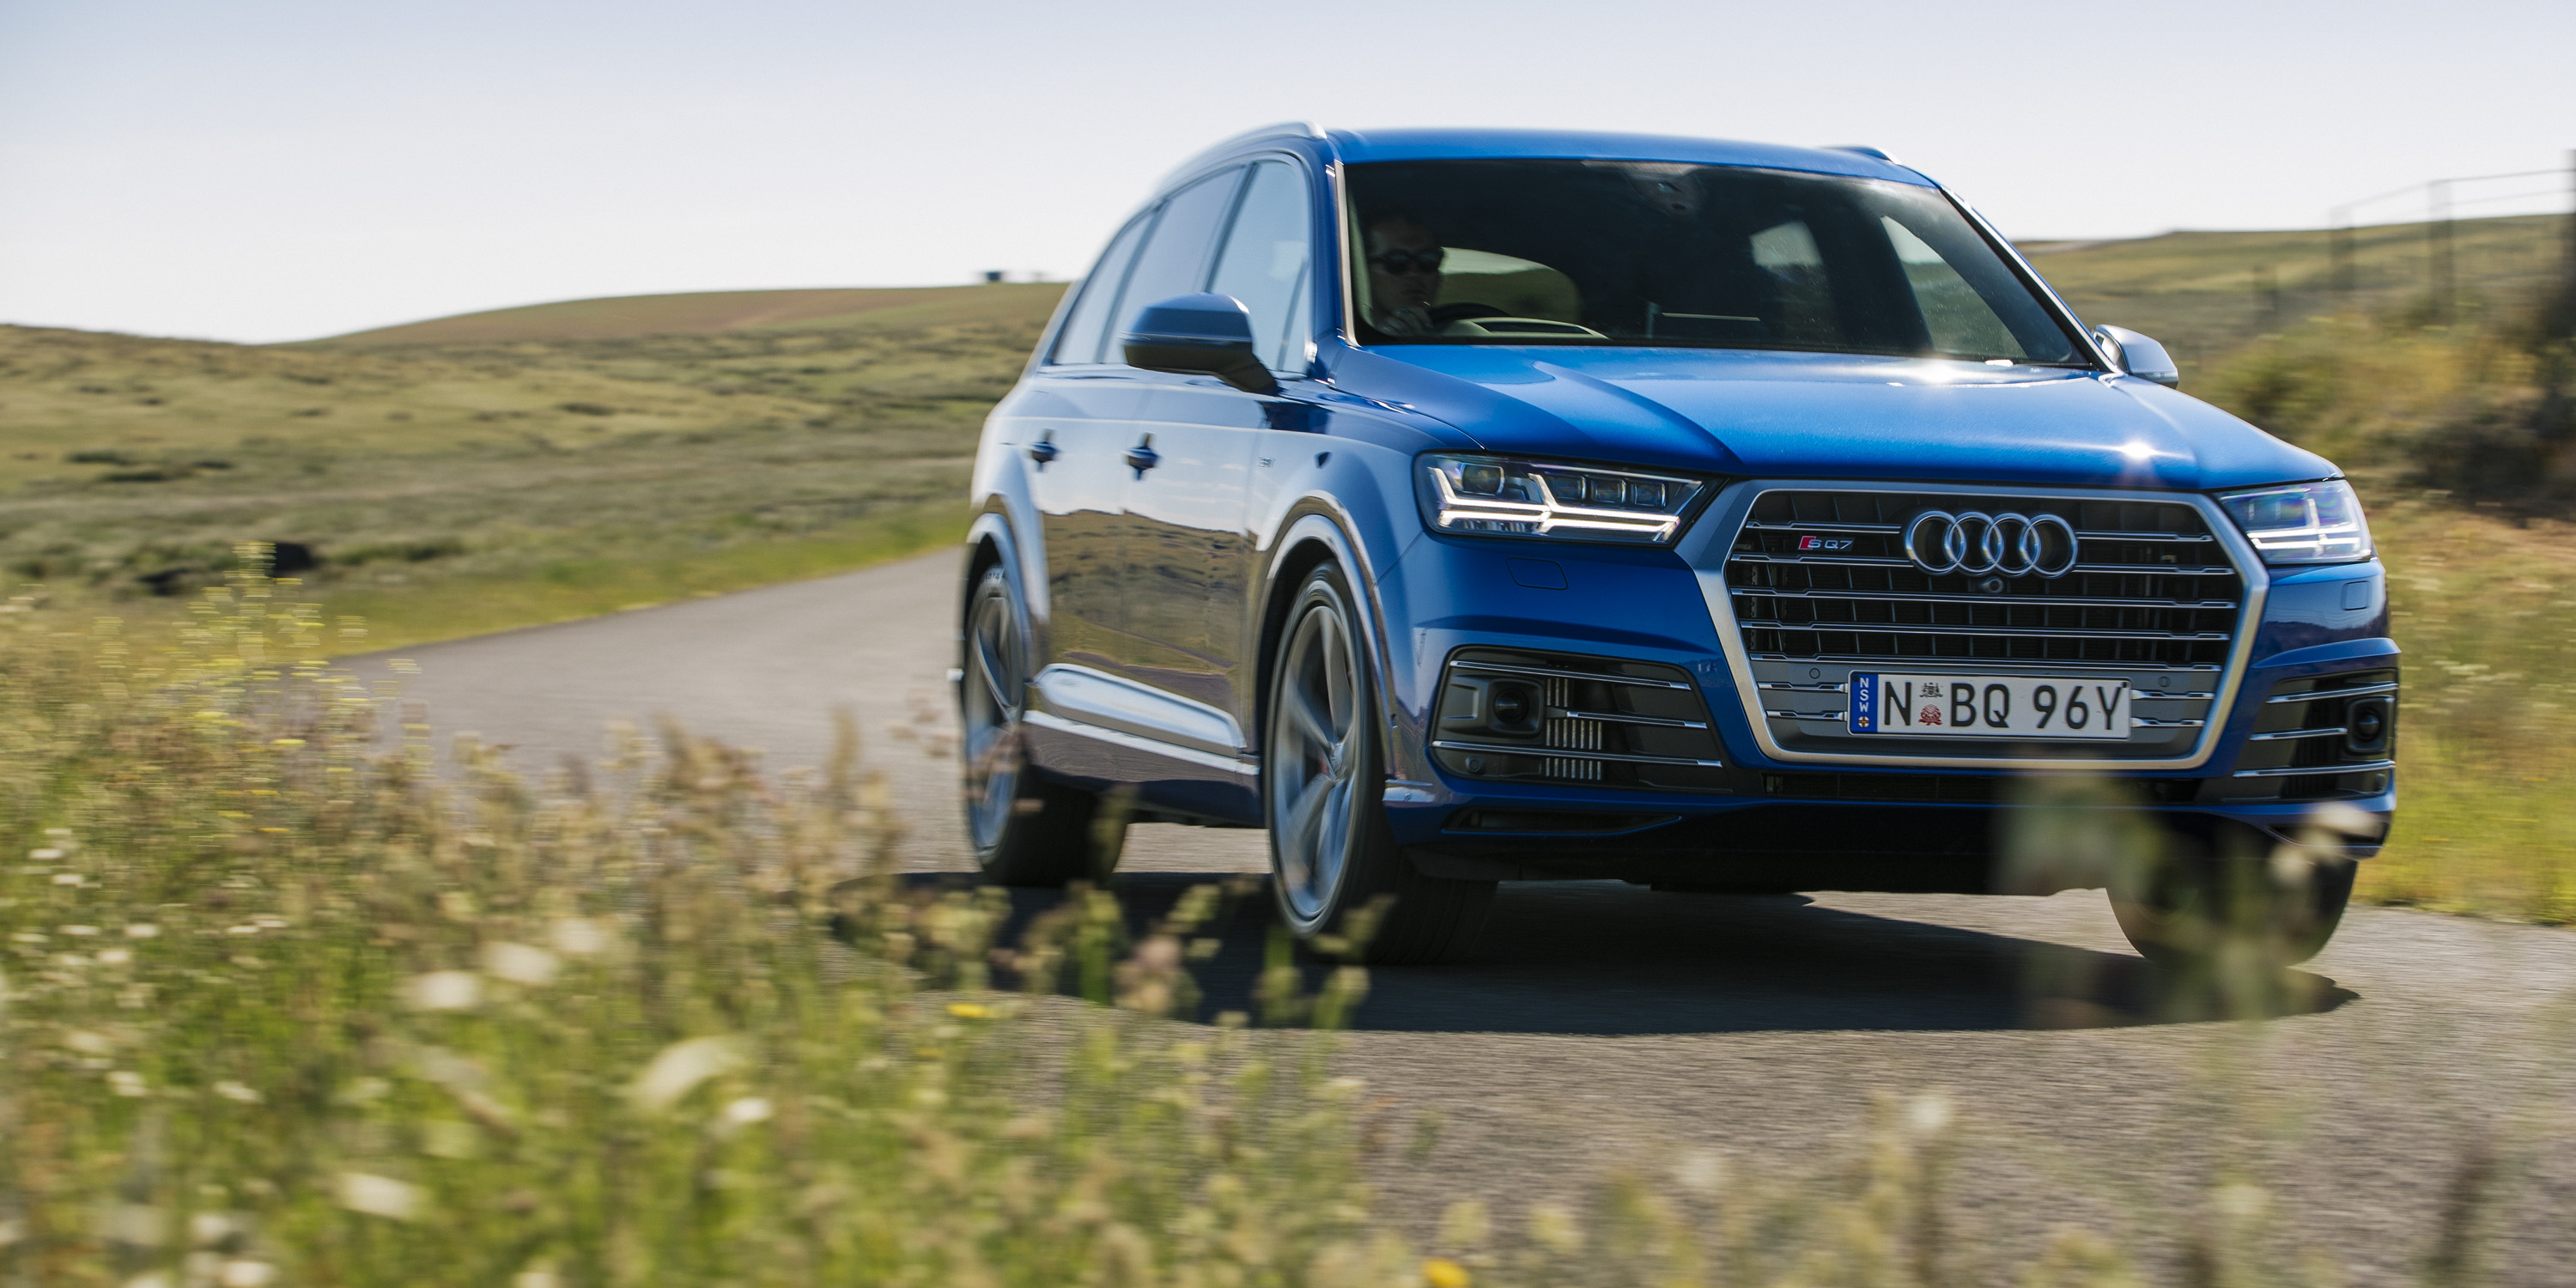 2018 Audi SQ7 TDI: Specs, Design, Price >> 2017 Audi Sq7 Tdi Review Caradvice